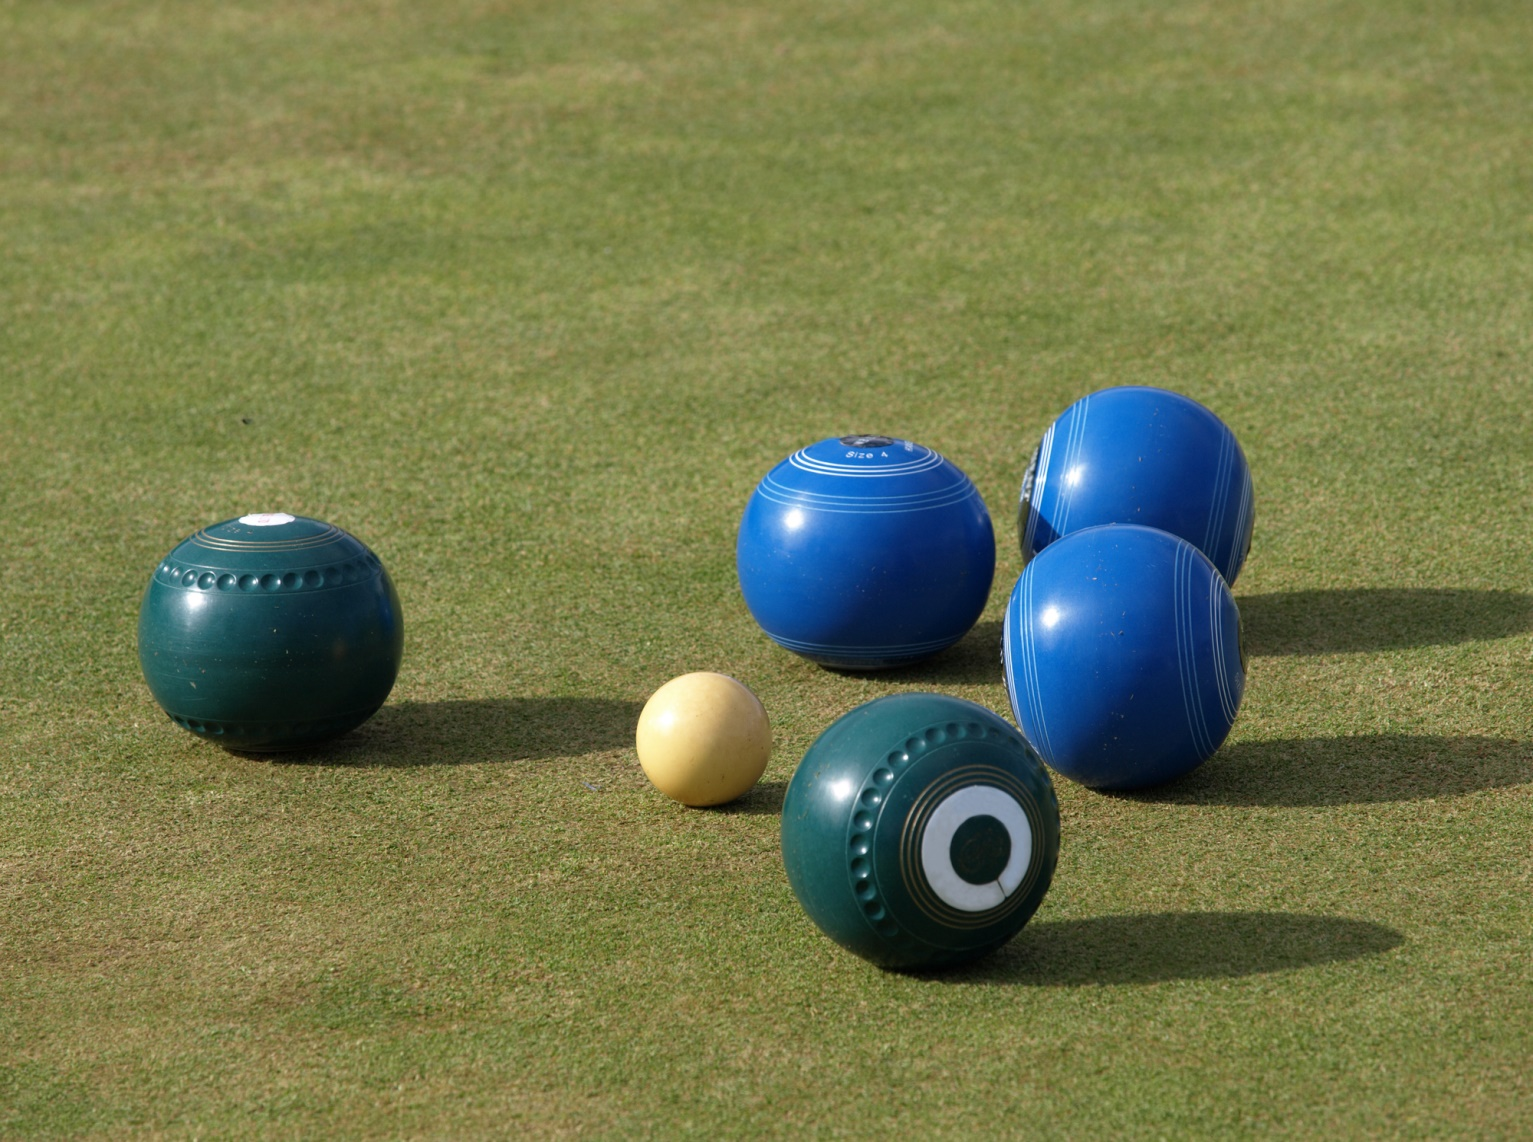 Have a Go at Lawn Bowls in Winchmore Hill